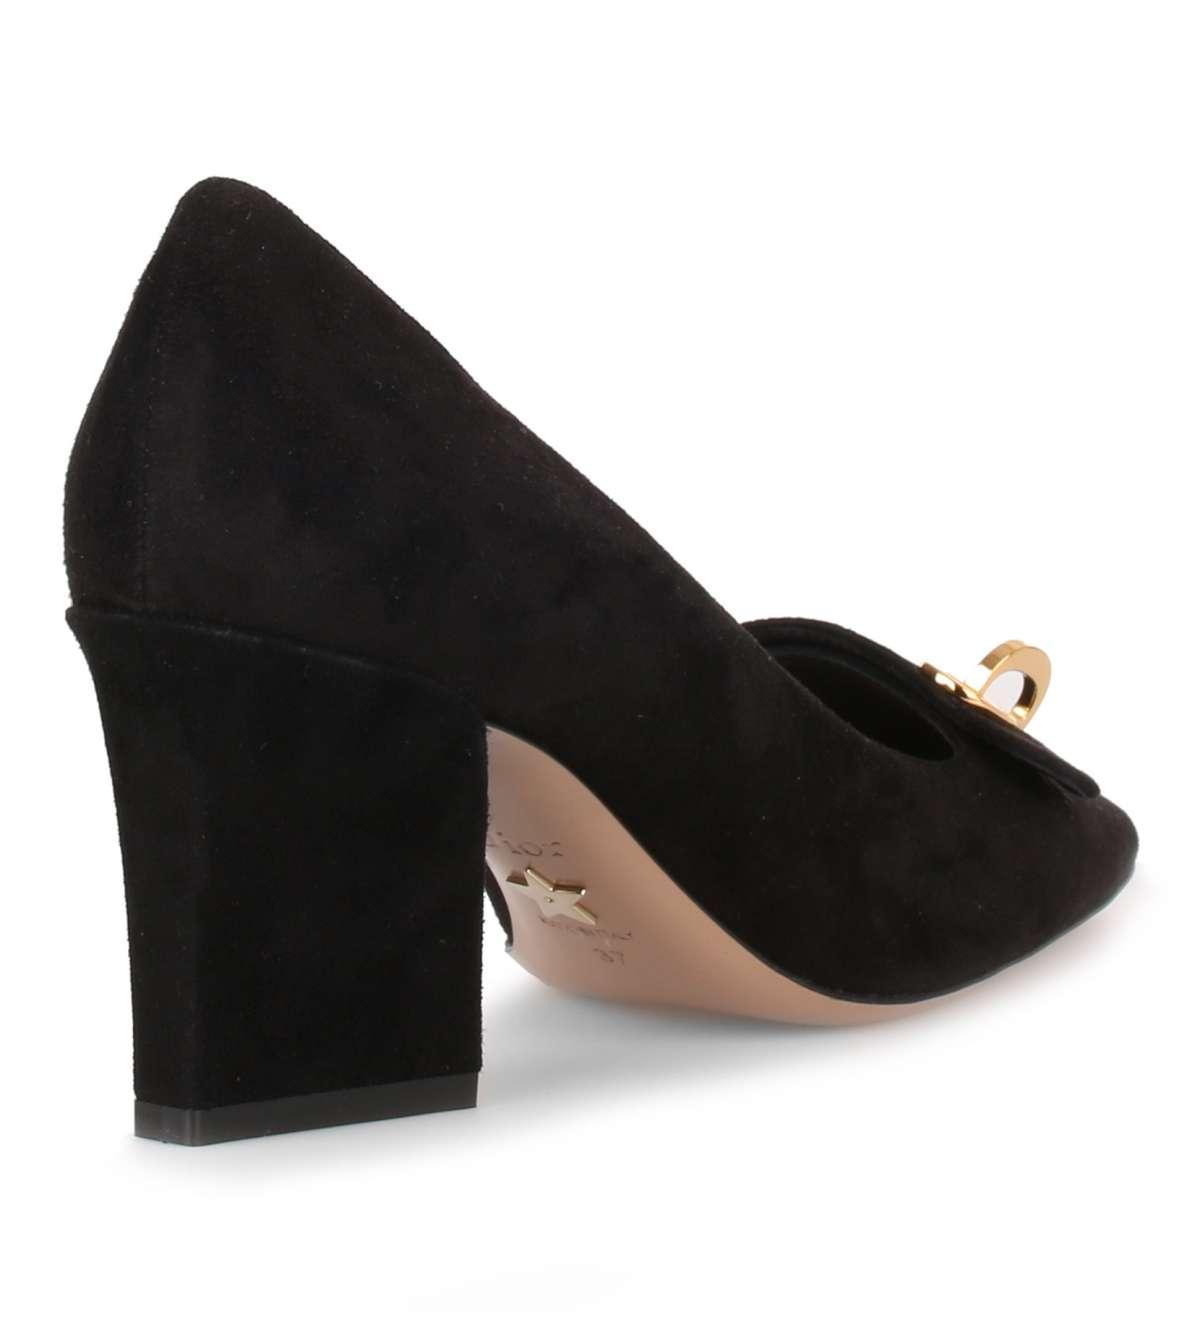 Clearance Browse Free Shipping Pick A Best Cest Dior black suede pump Dior Buy Online With Paypal Clearance Best Sale Sale Limited Edition cdJuCw8awe